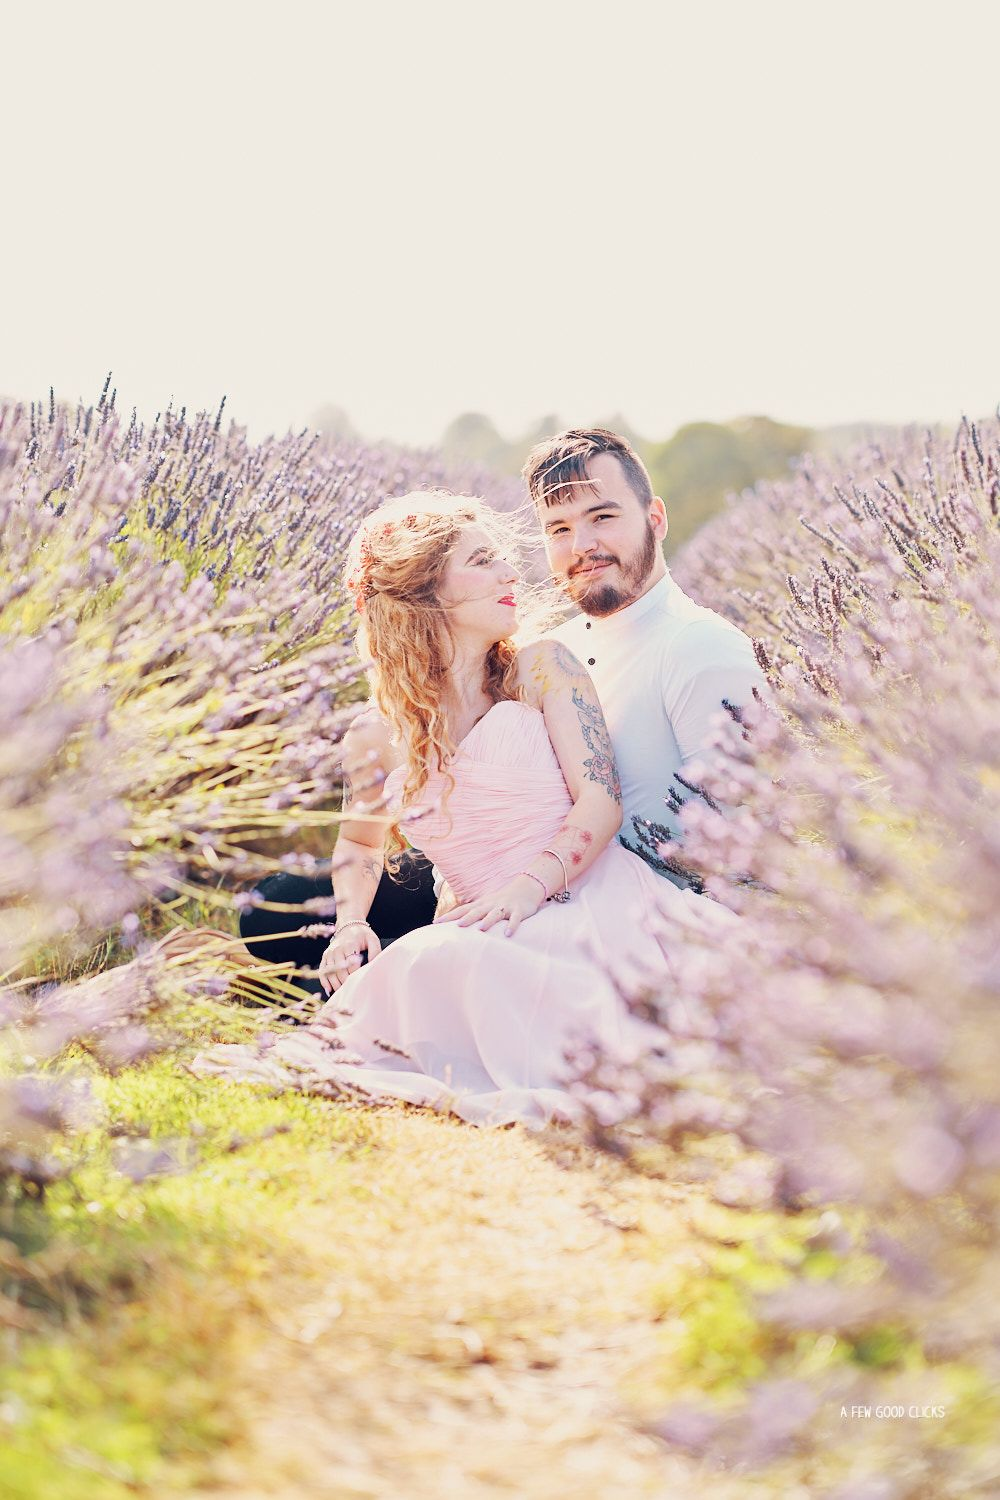 Dreamy Lavender Fields Location For Engagement Photo Shoot